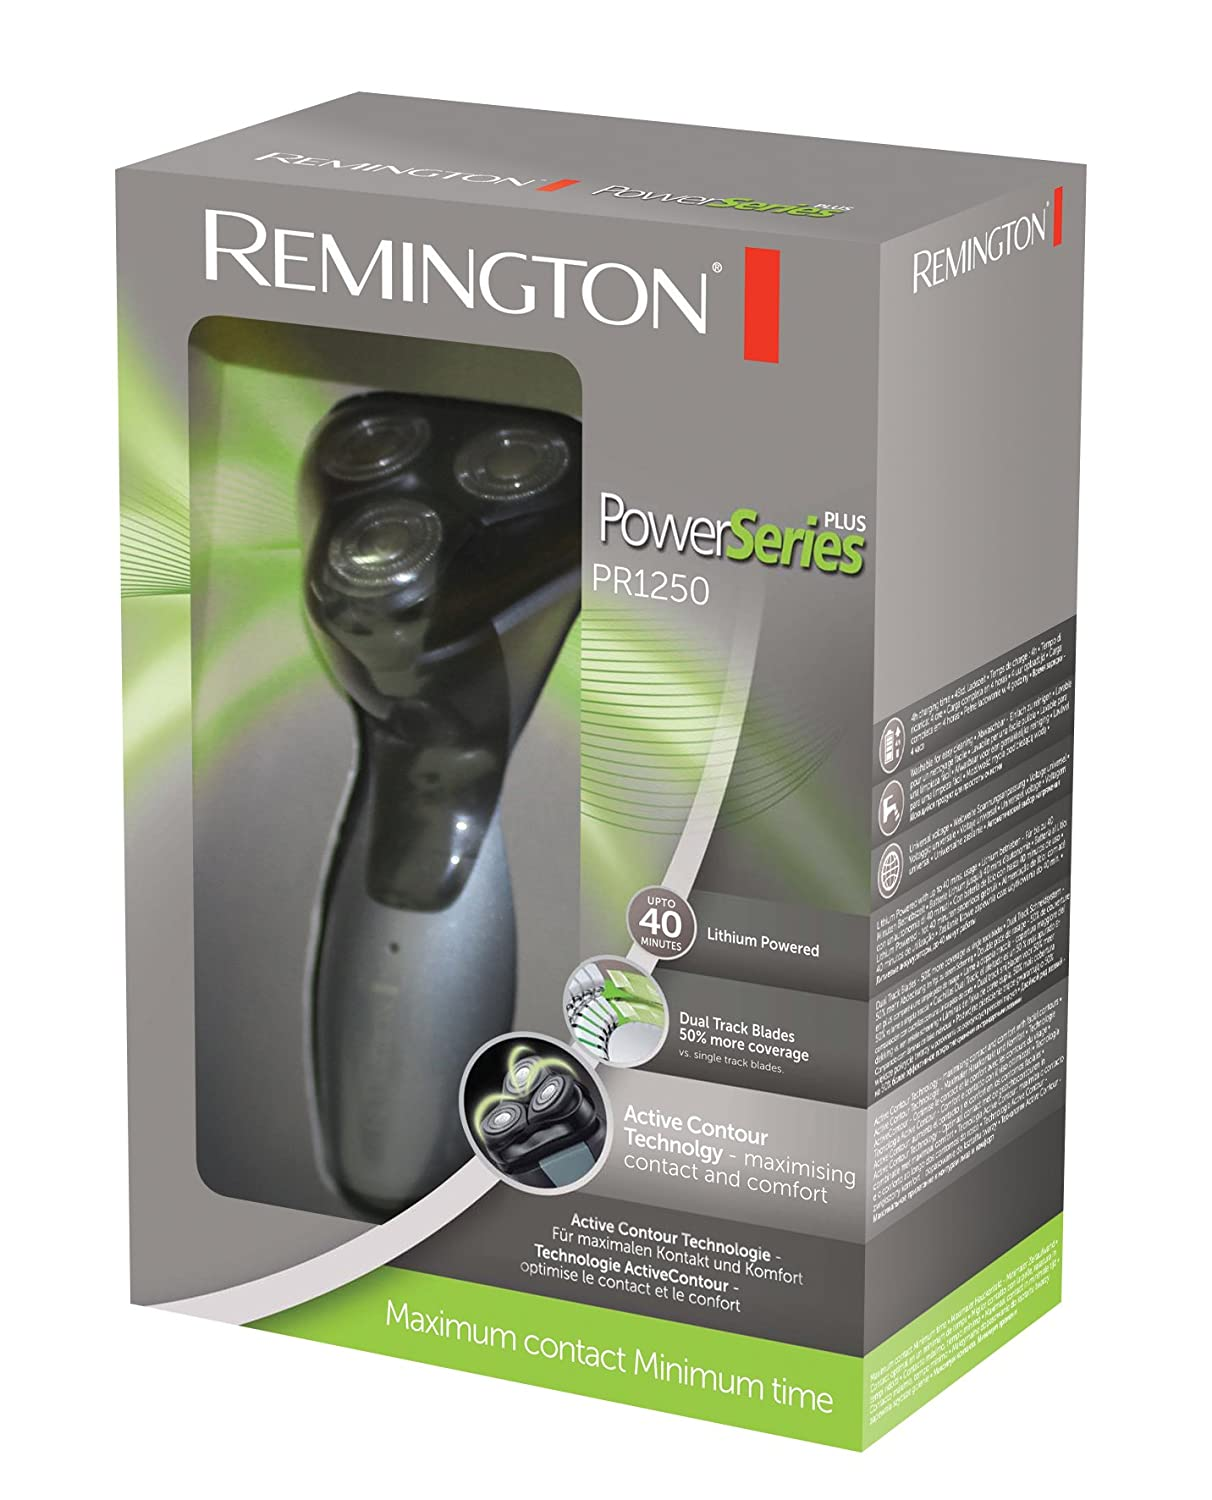 Amazon.com: Remington Power Series afeitadora giratoria: Beauty